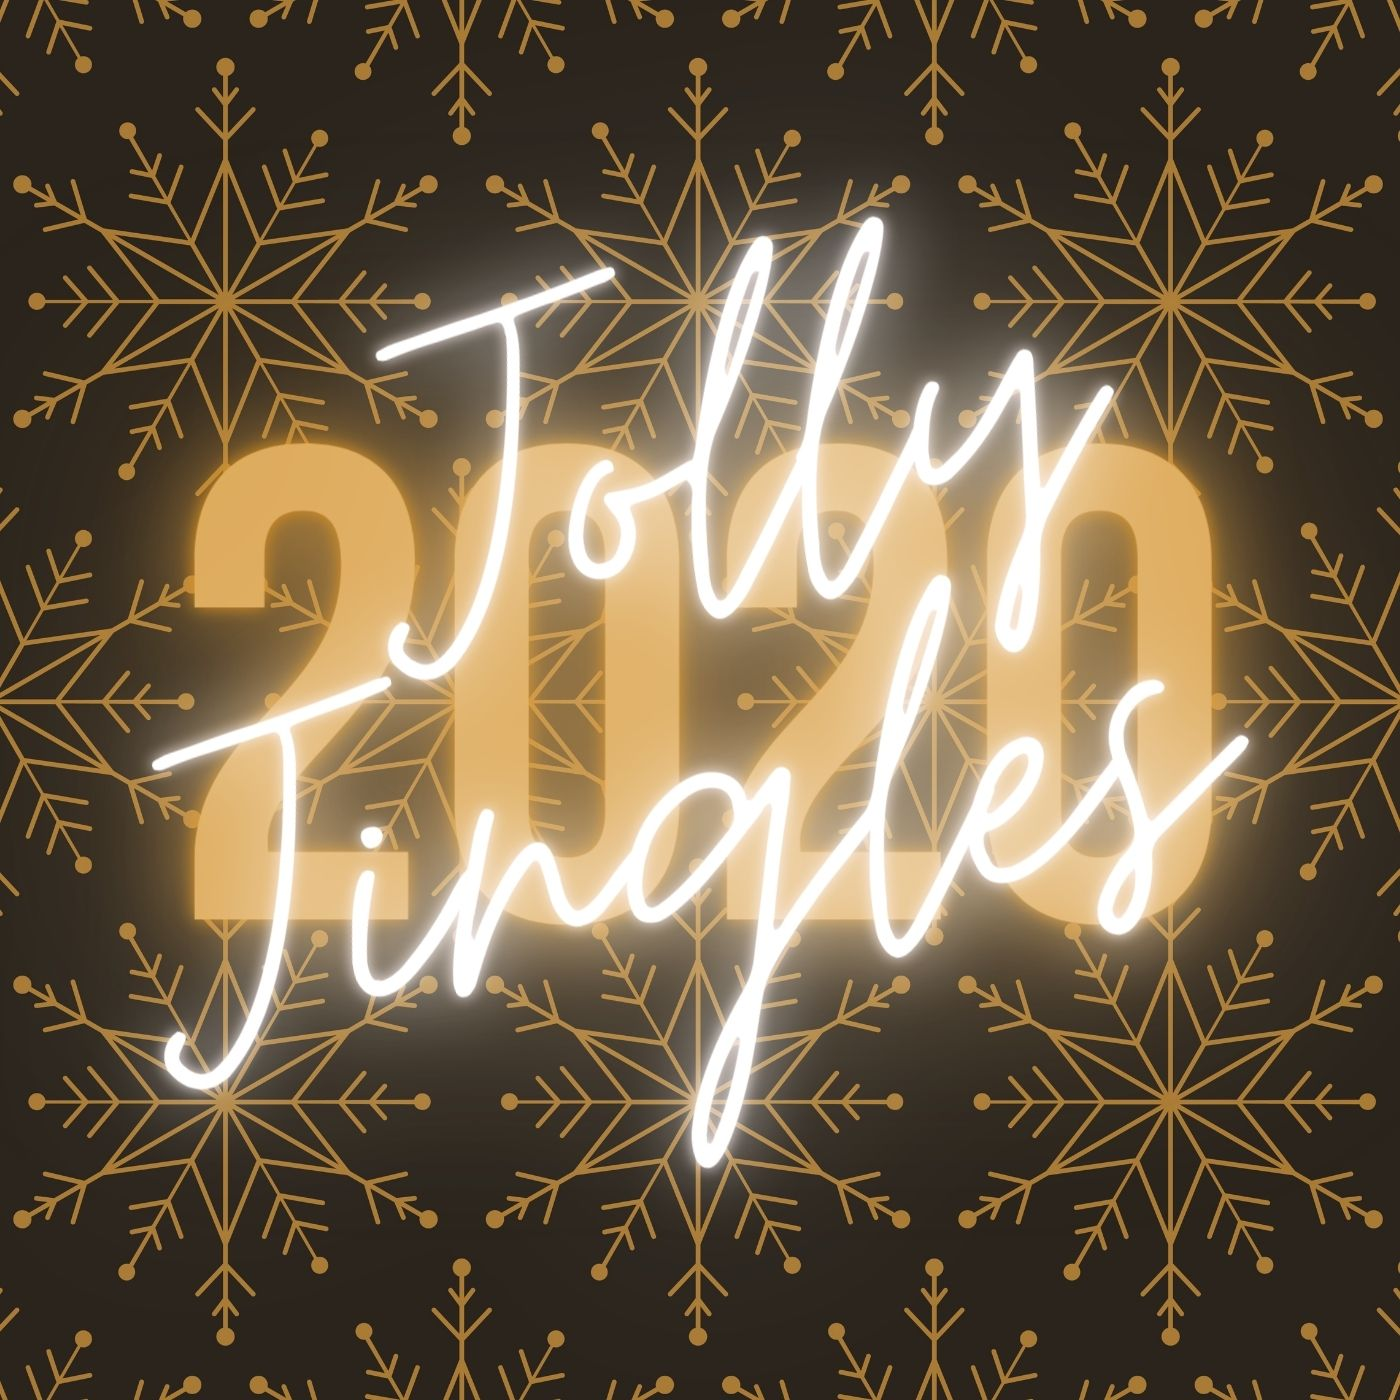 a square image of repeating gold snowflakes with neon writing saying jolly jingles 2020